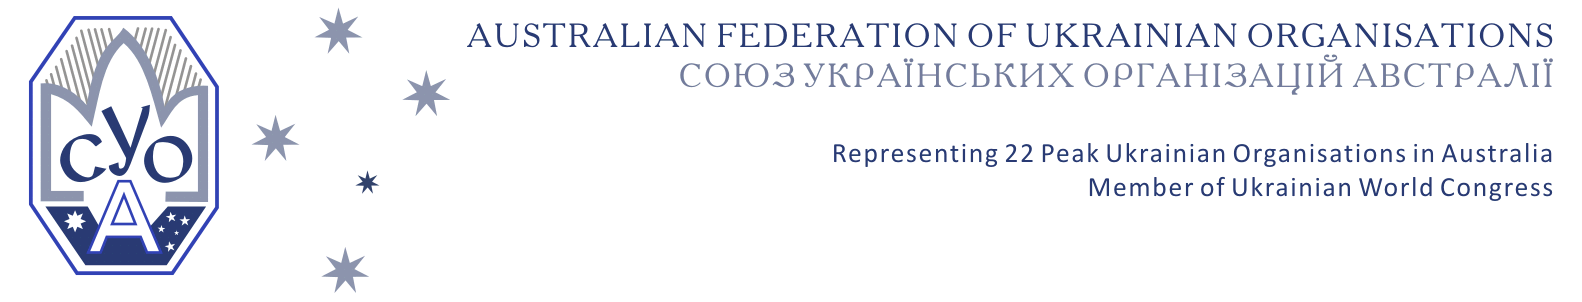 Australian Federation of Ukrainian Organisations